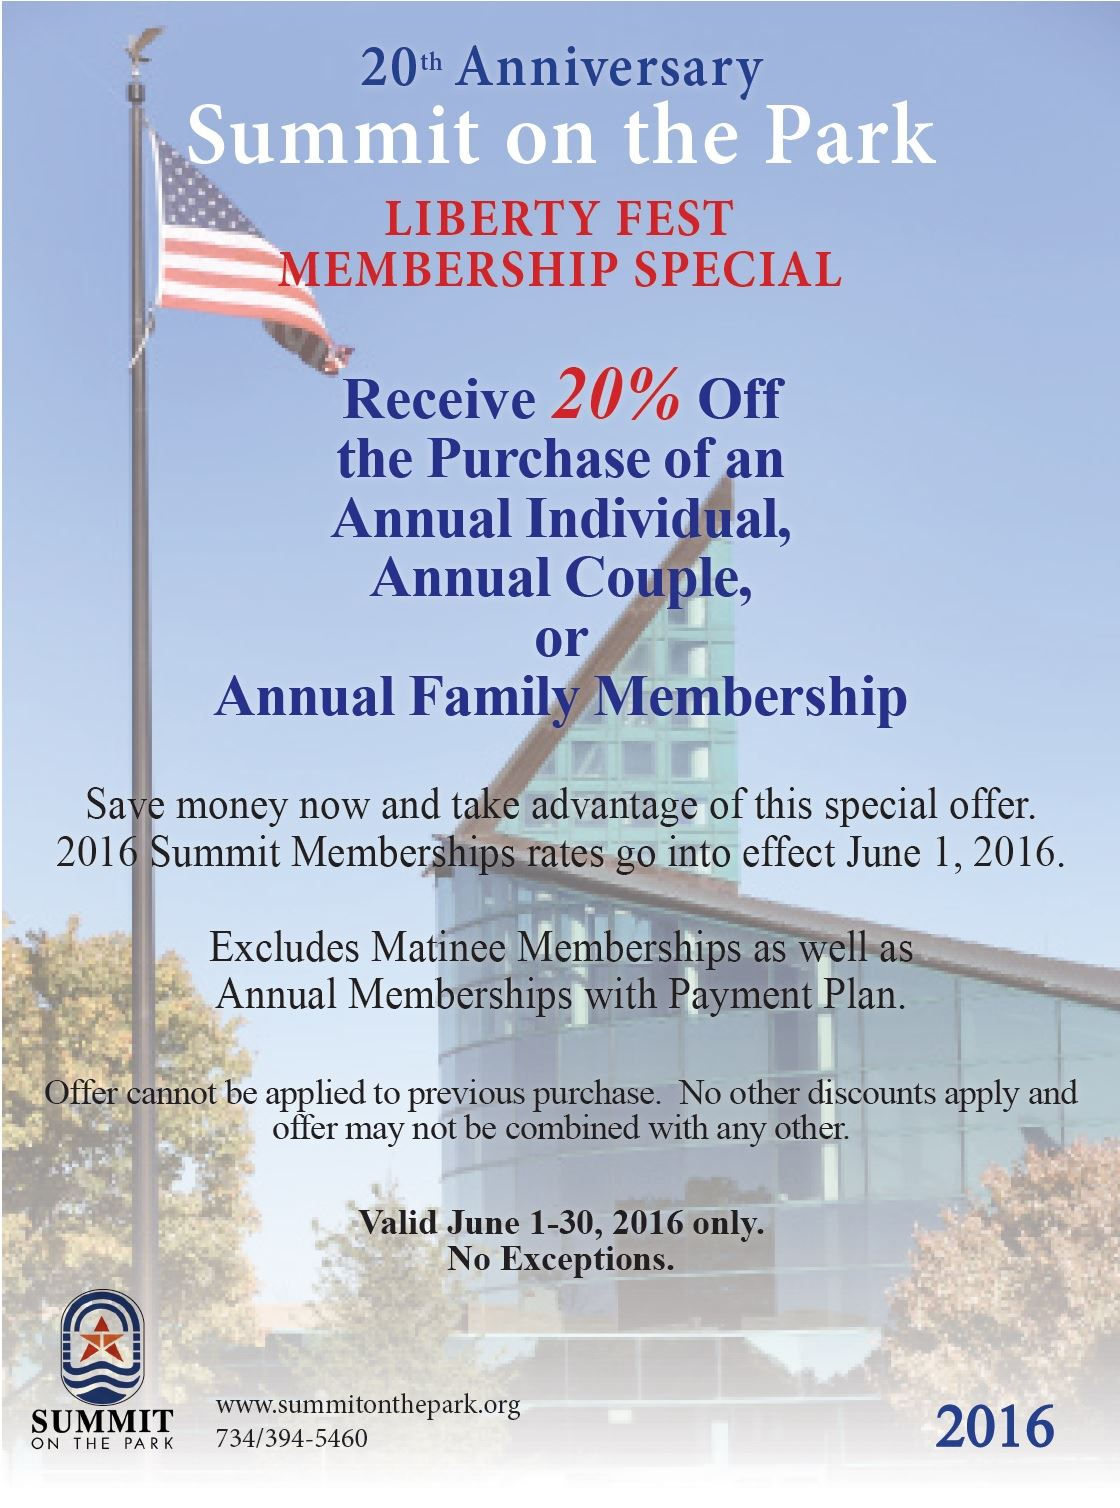 Liberty Fest Membership Flyer